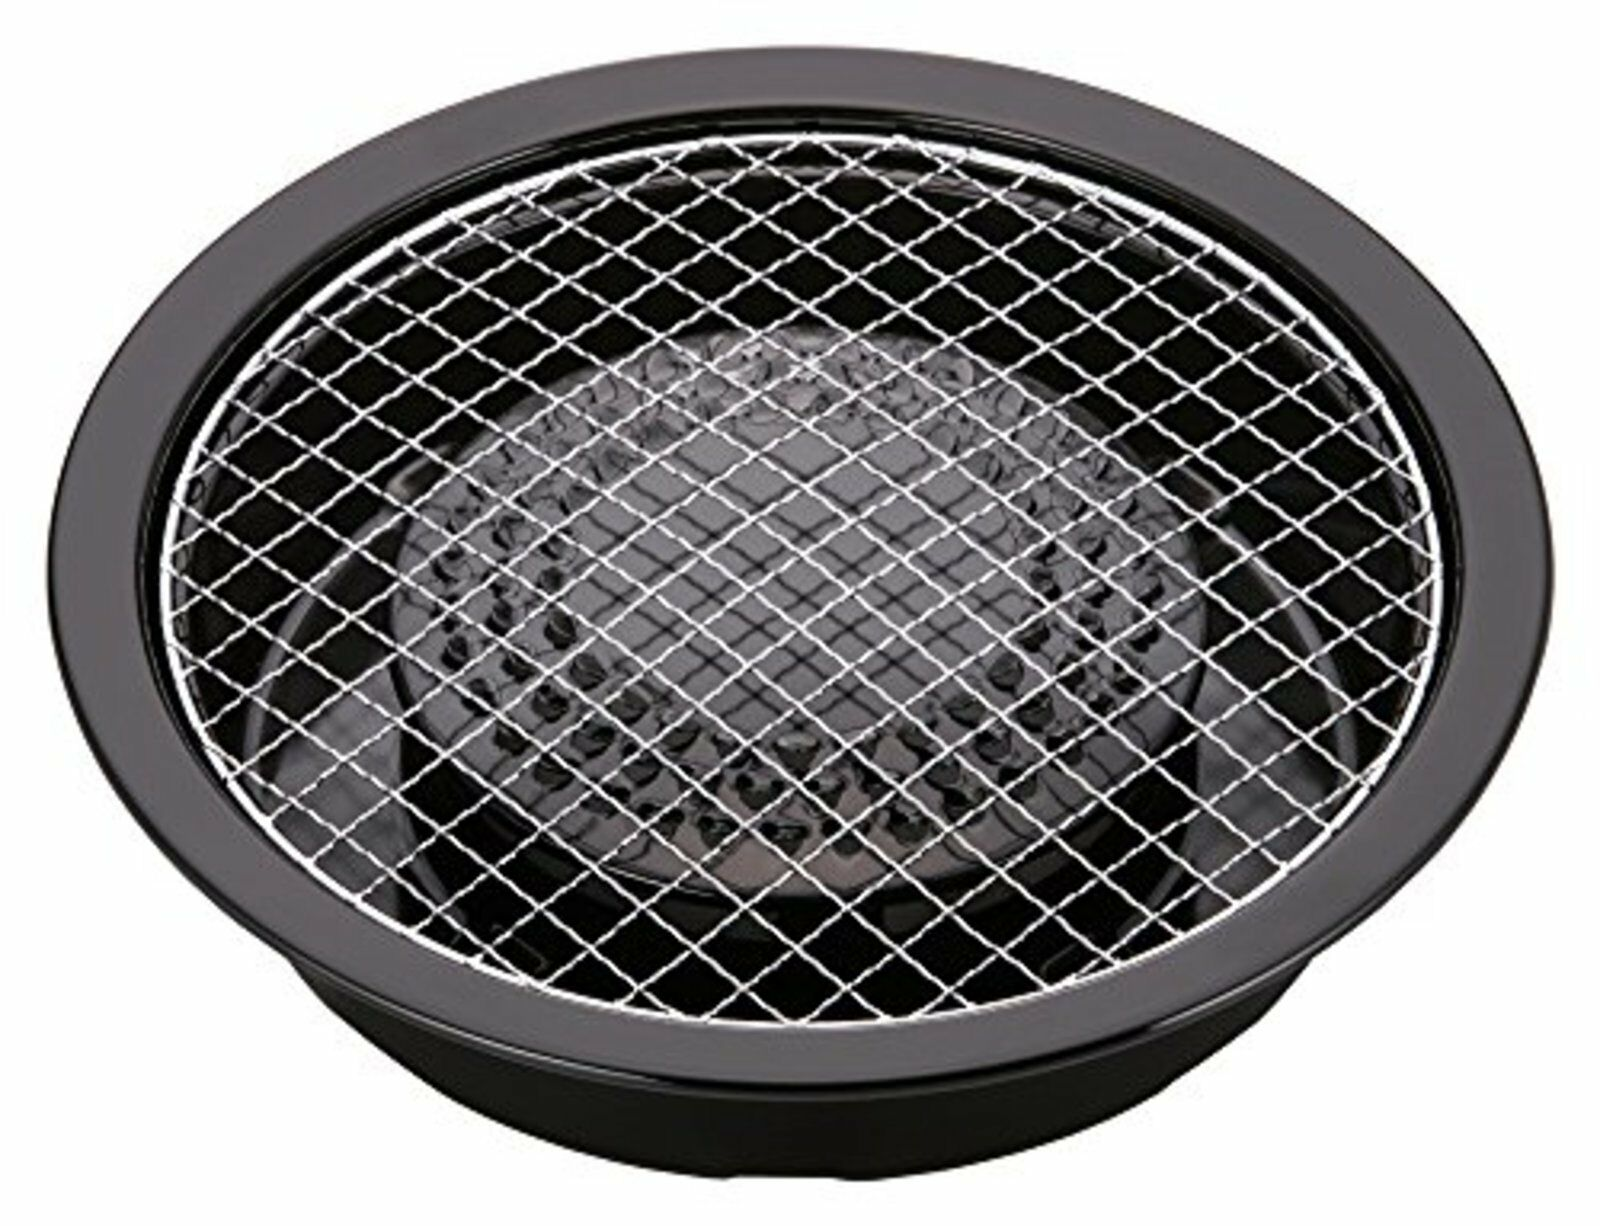 IWATANI CB-P-AM3 Grill Plate for Portable Gas Stove Yakiniku New from Japan F S